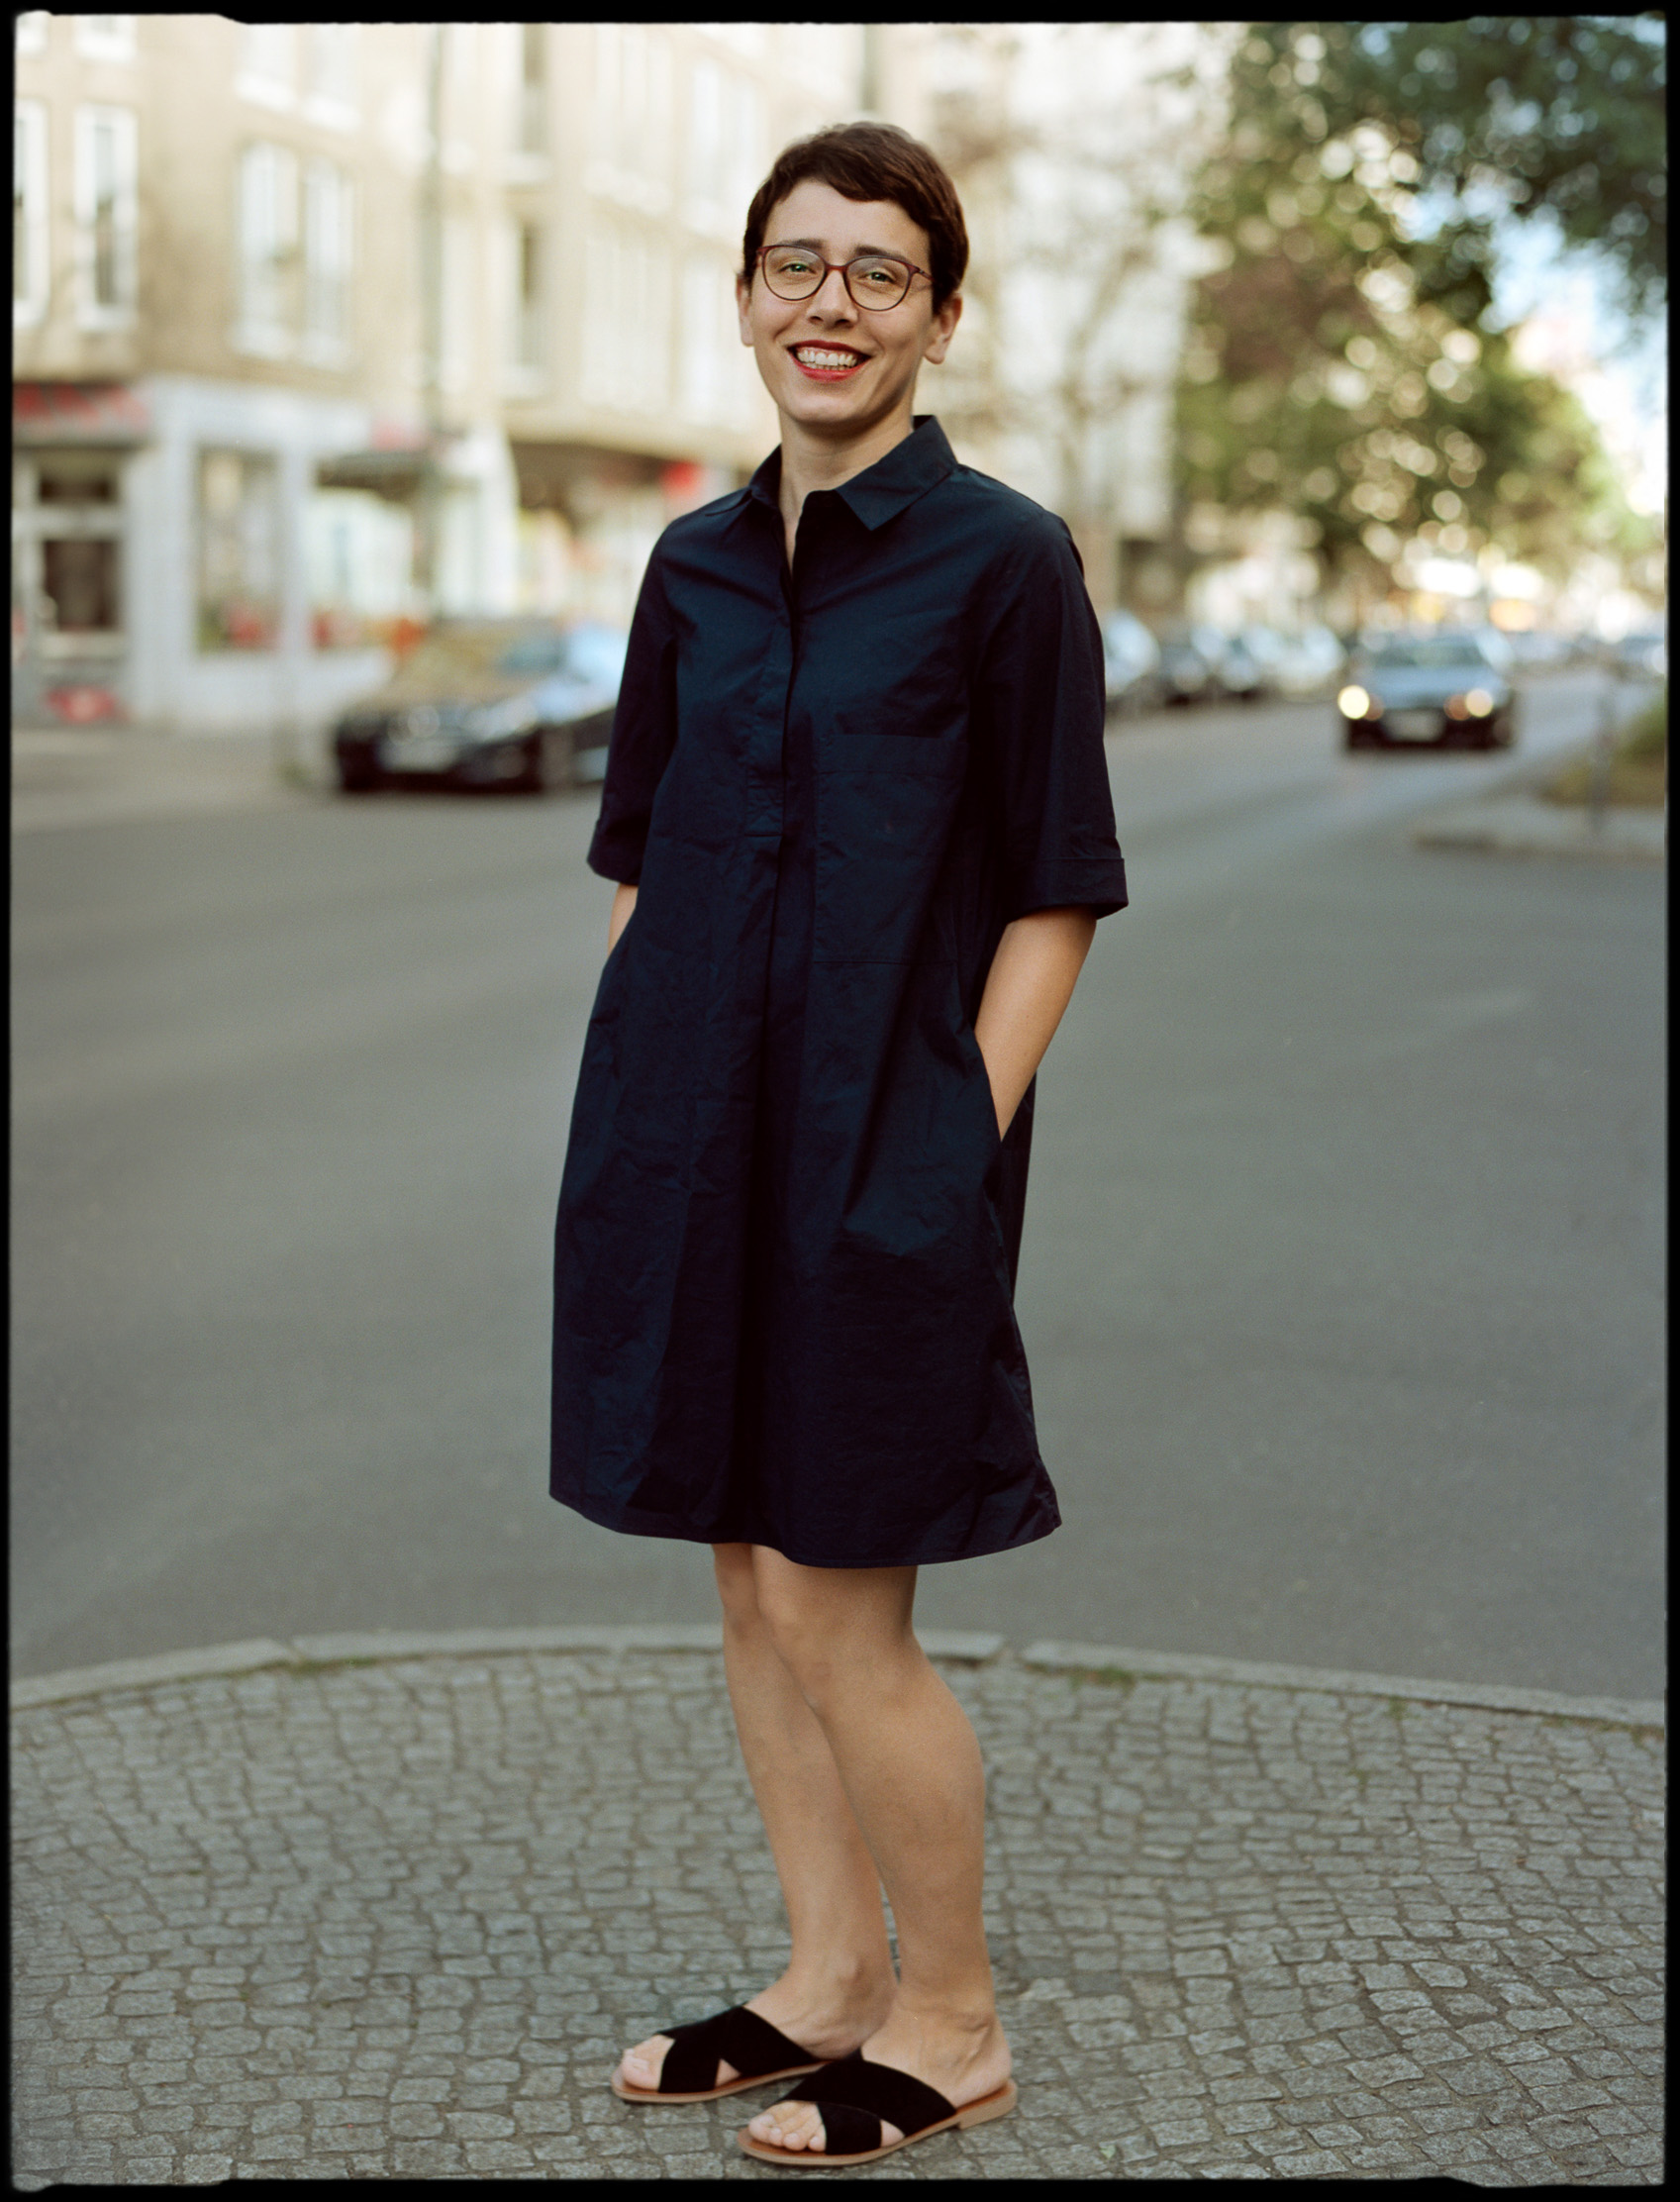 berlin street style woman in the coss dress